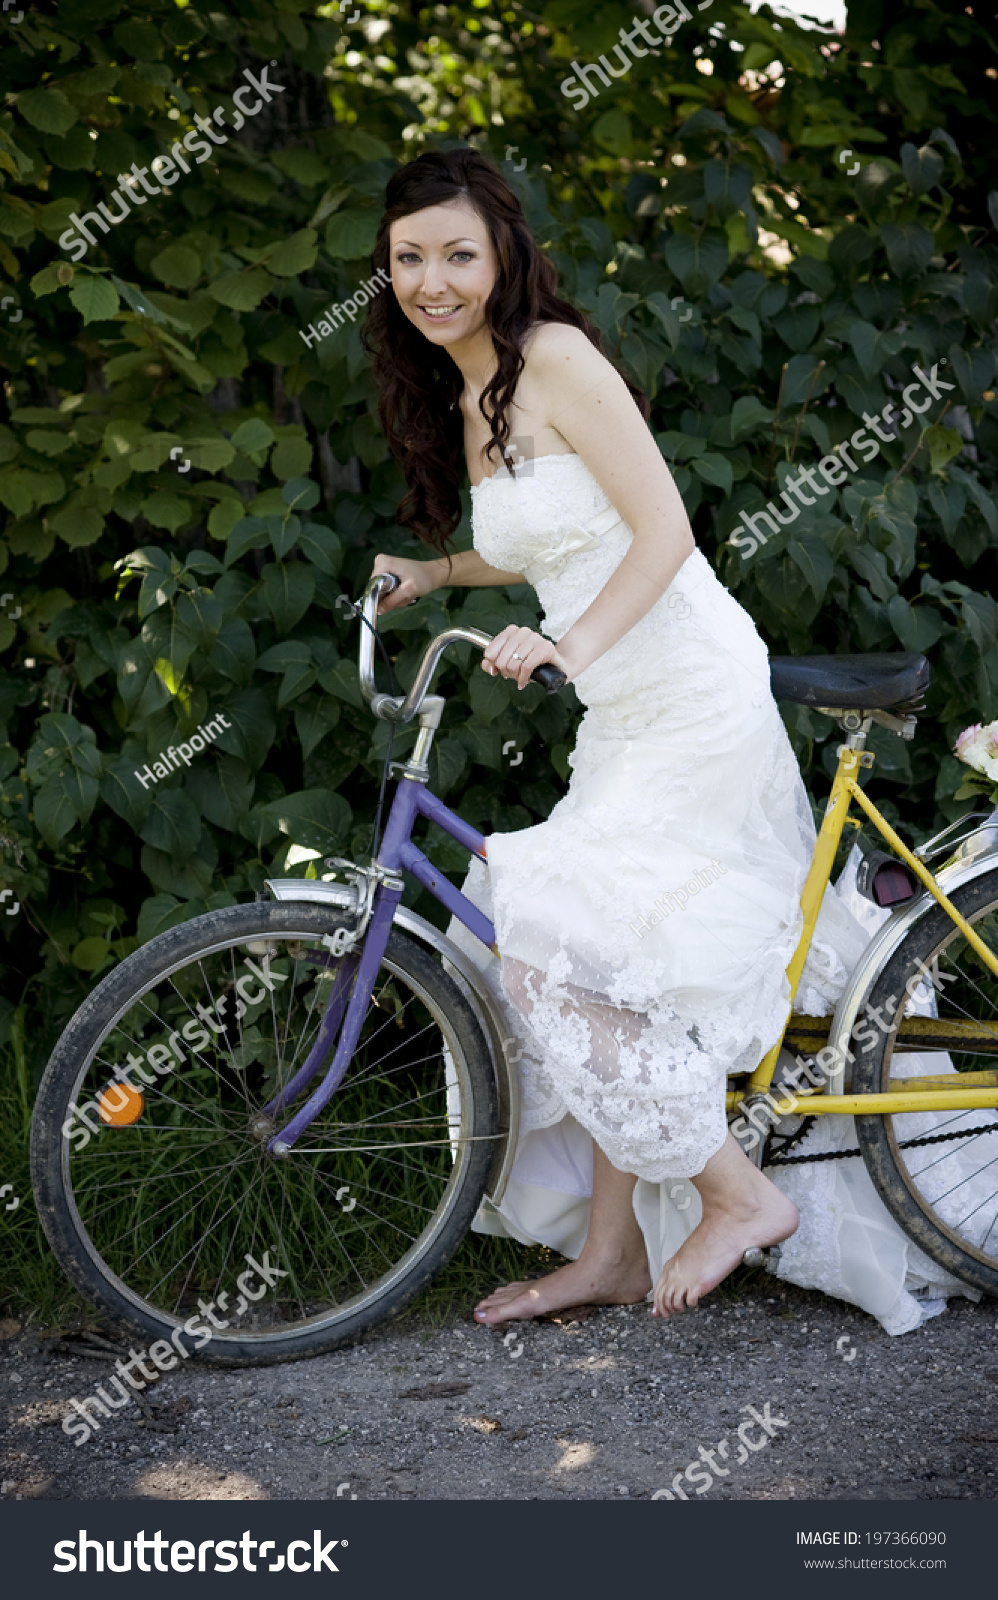 https://image.shutterstock.com/z/stock-photo-bride-in-white-wedding-dress-on-retro-bicycle-197366090.jpg